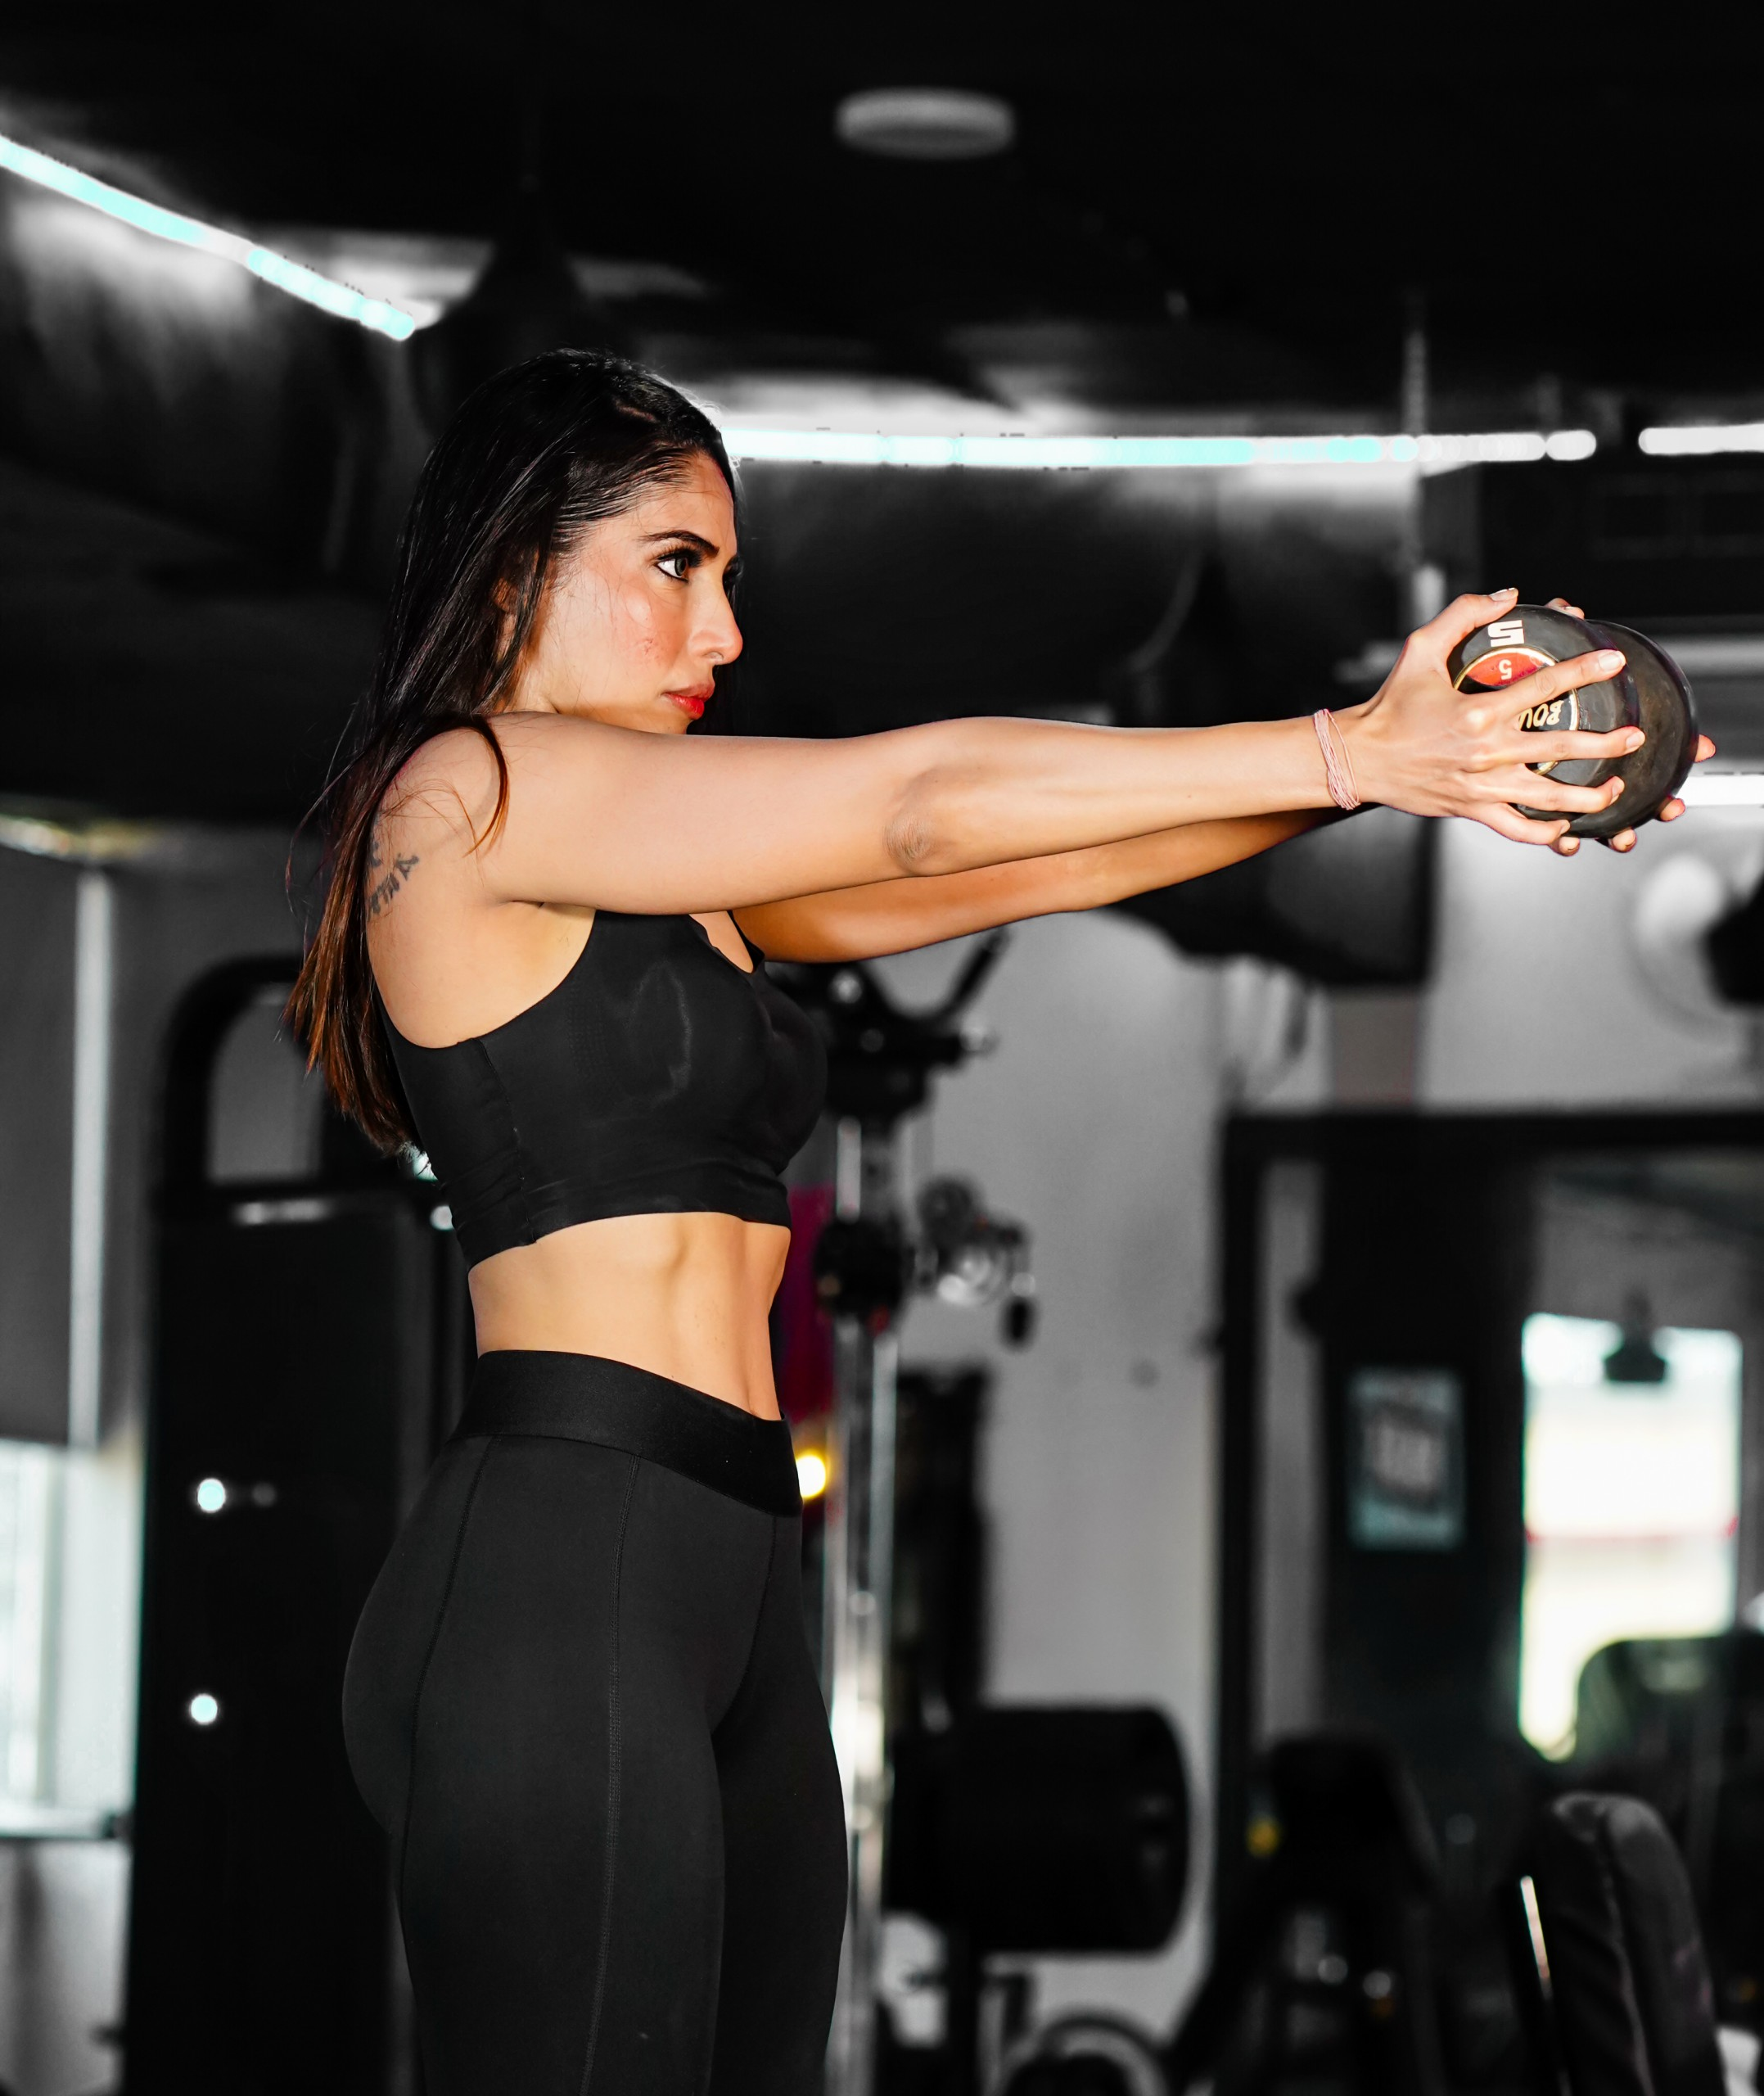 lady working out with dumbbell